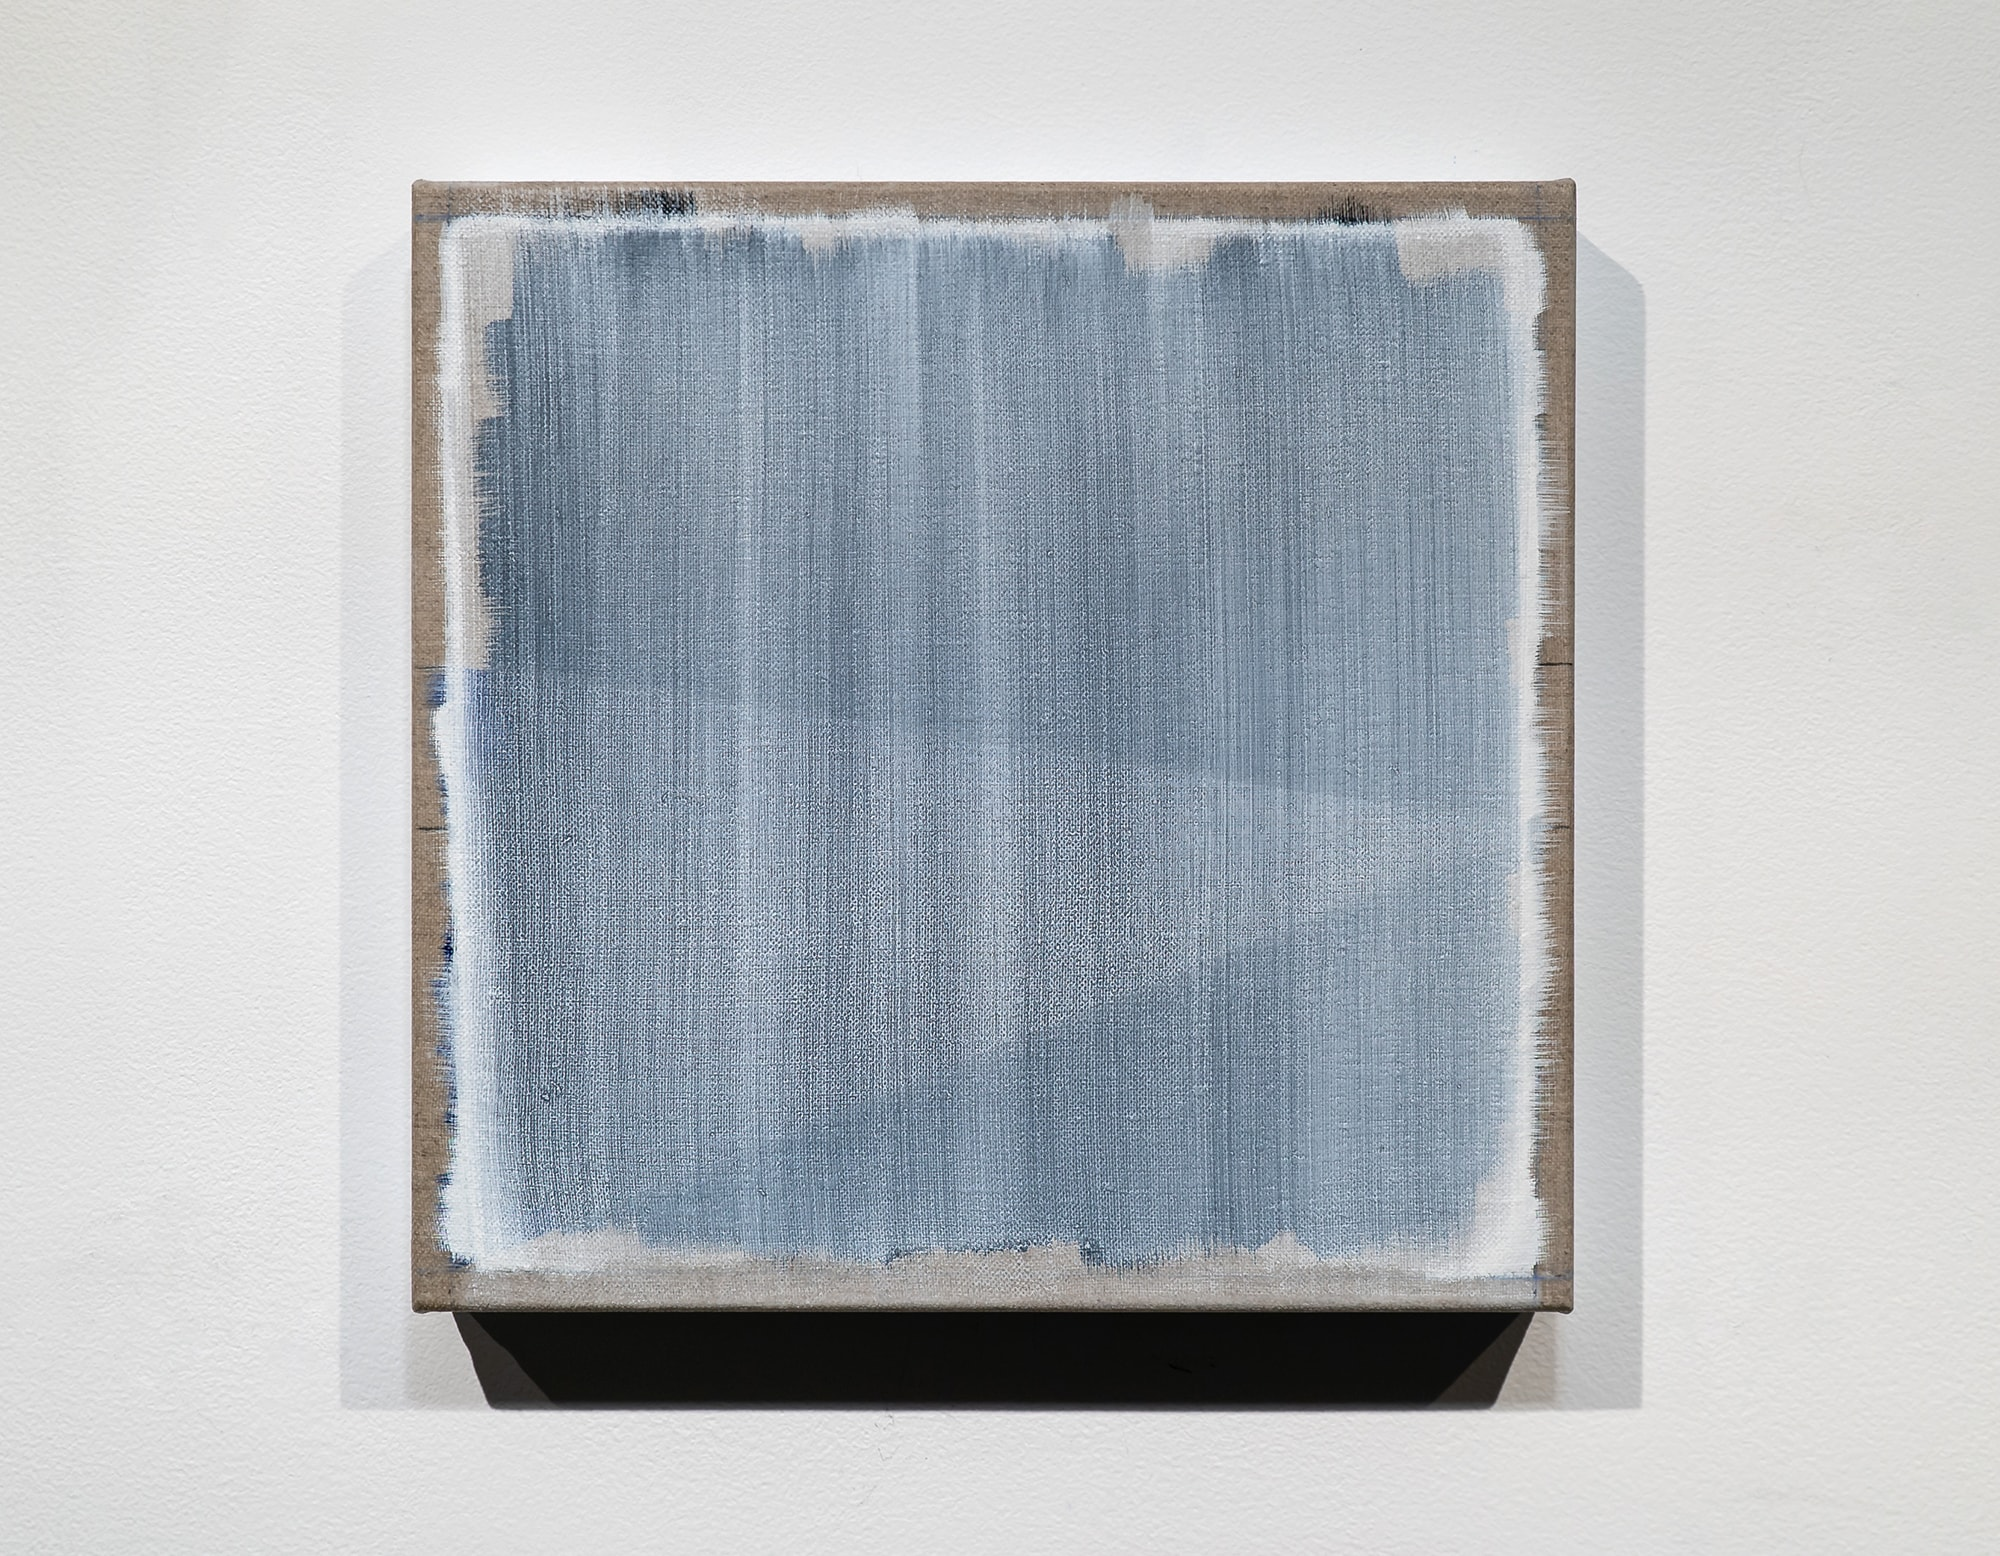 Randy Gibson's <em>Rational Wedge 21:28 (White)</em> | 2018 | 13.5″ x 14″ x 1.5″ | Oil, Acrylic Dispersion, and Chalk on Linen